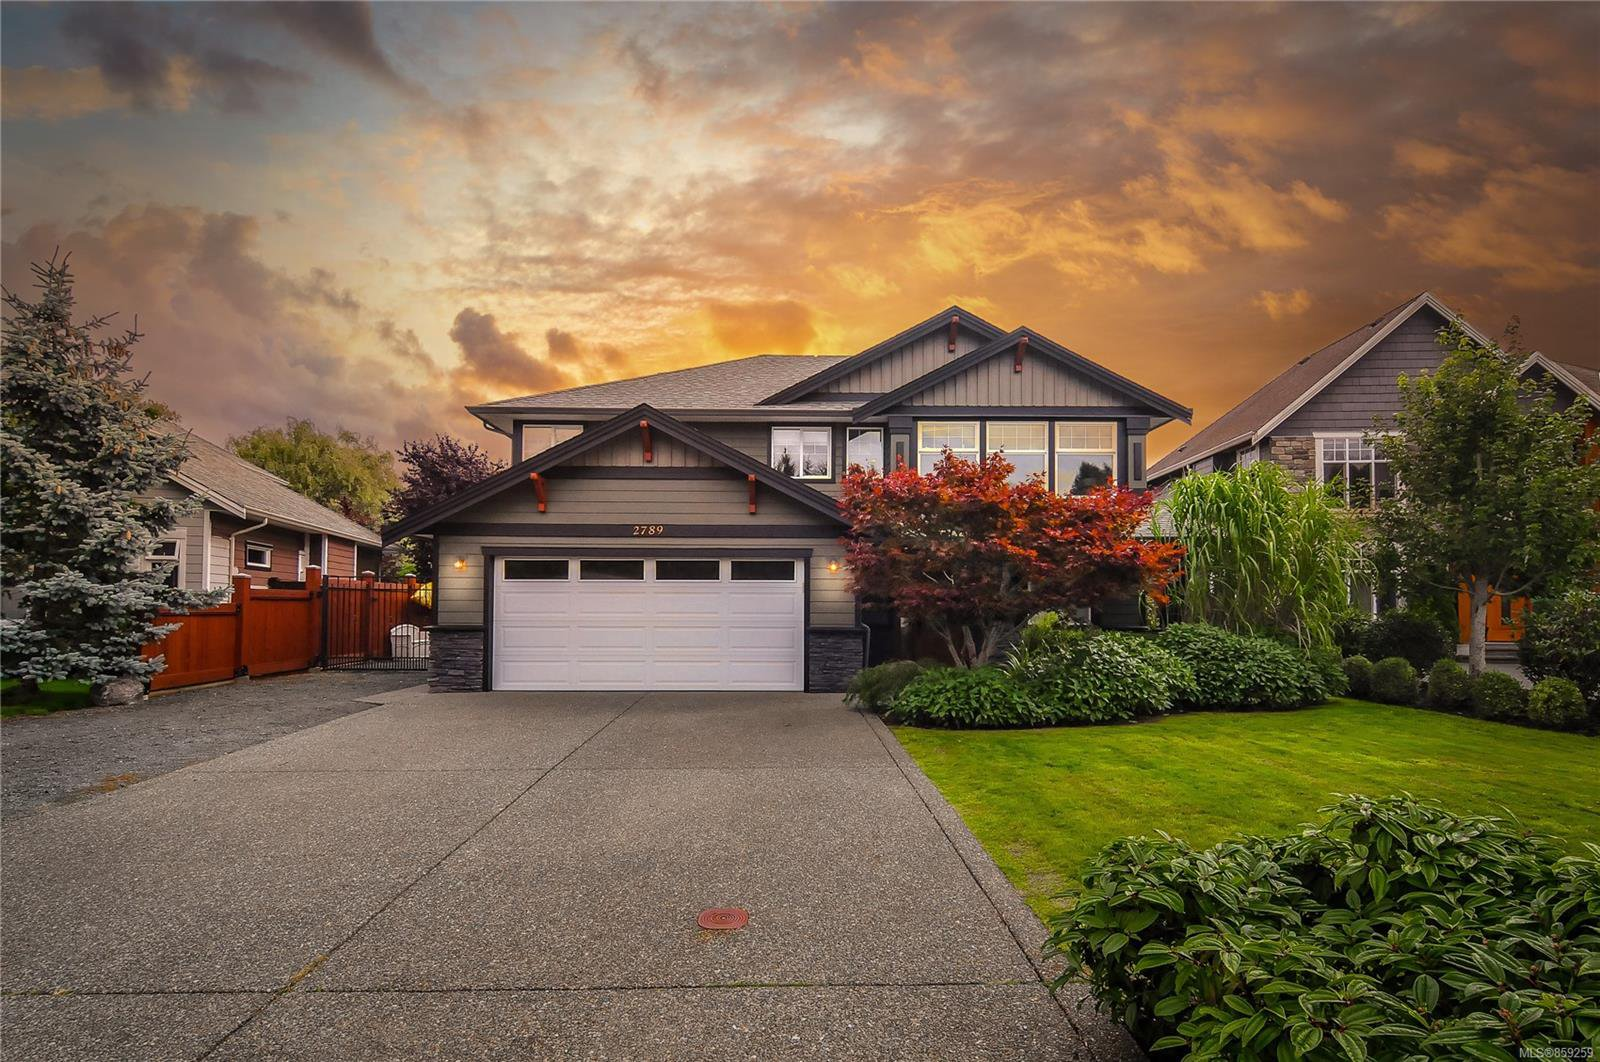 Main Photo: 2789 Denman St in : CR Willow Point House for sale (Campbell River)  : MLS®# 859259